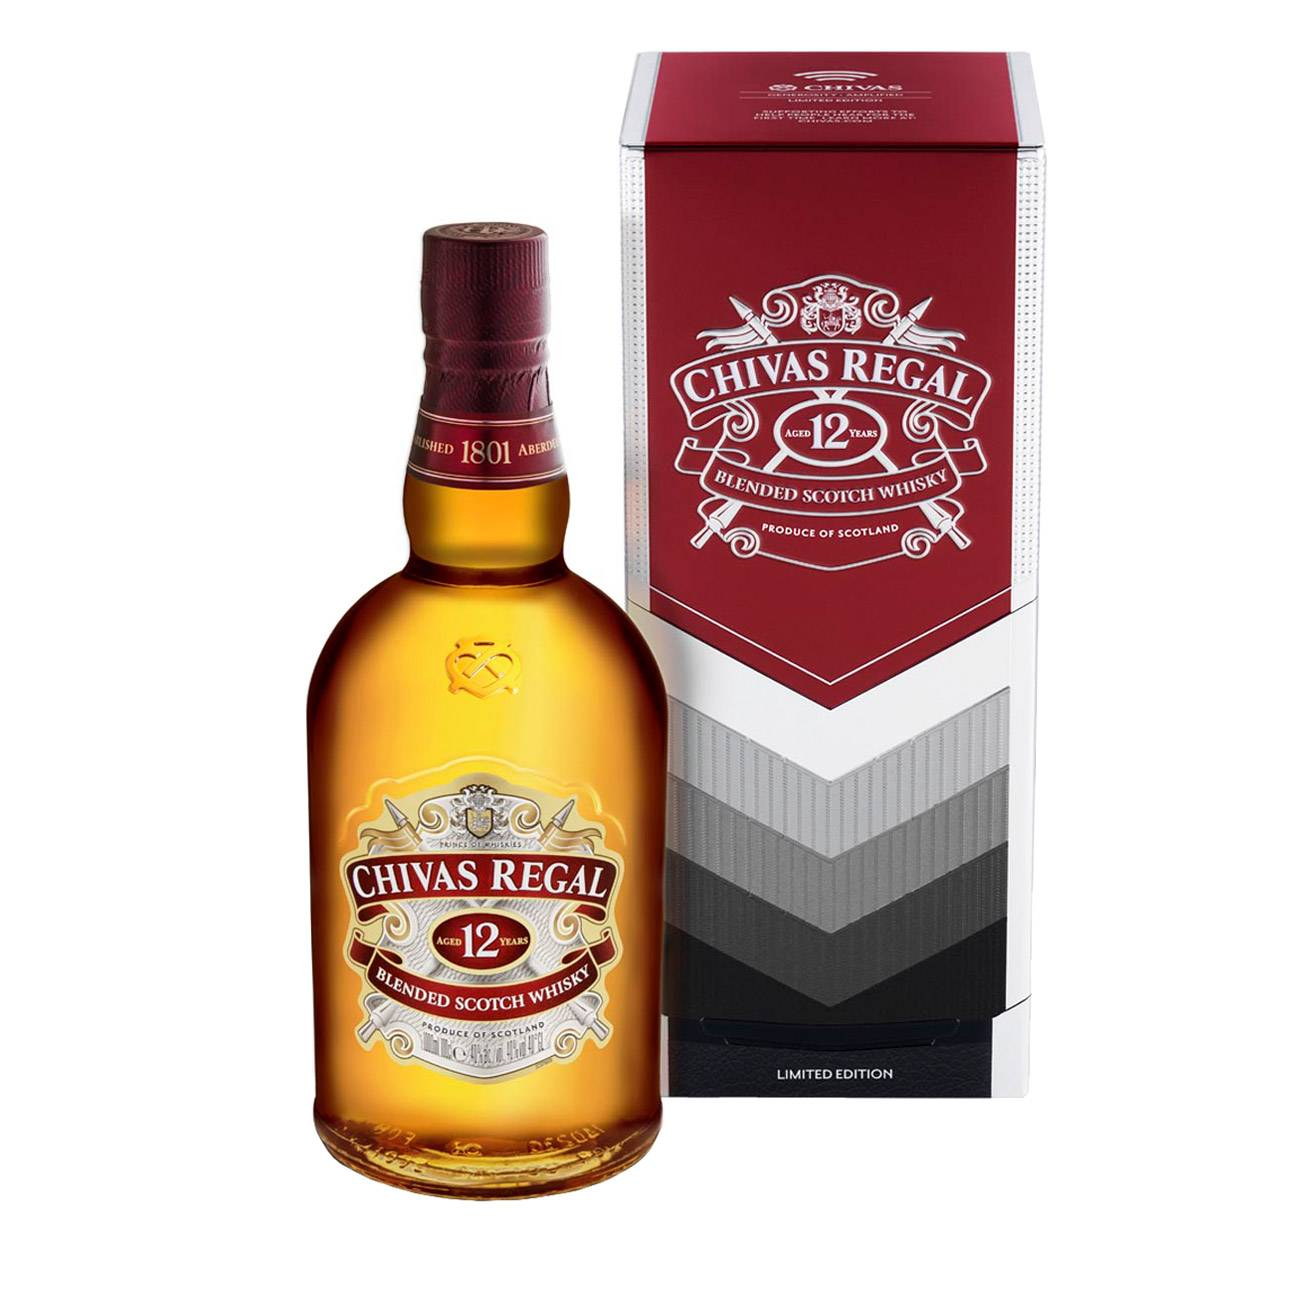 Blended Scotch 12 Years Old Limited Edition 1000 Ml de la Chivas Regal